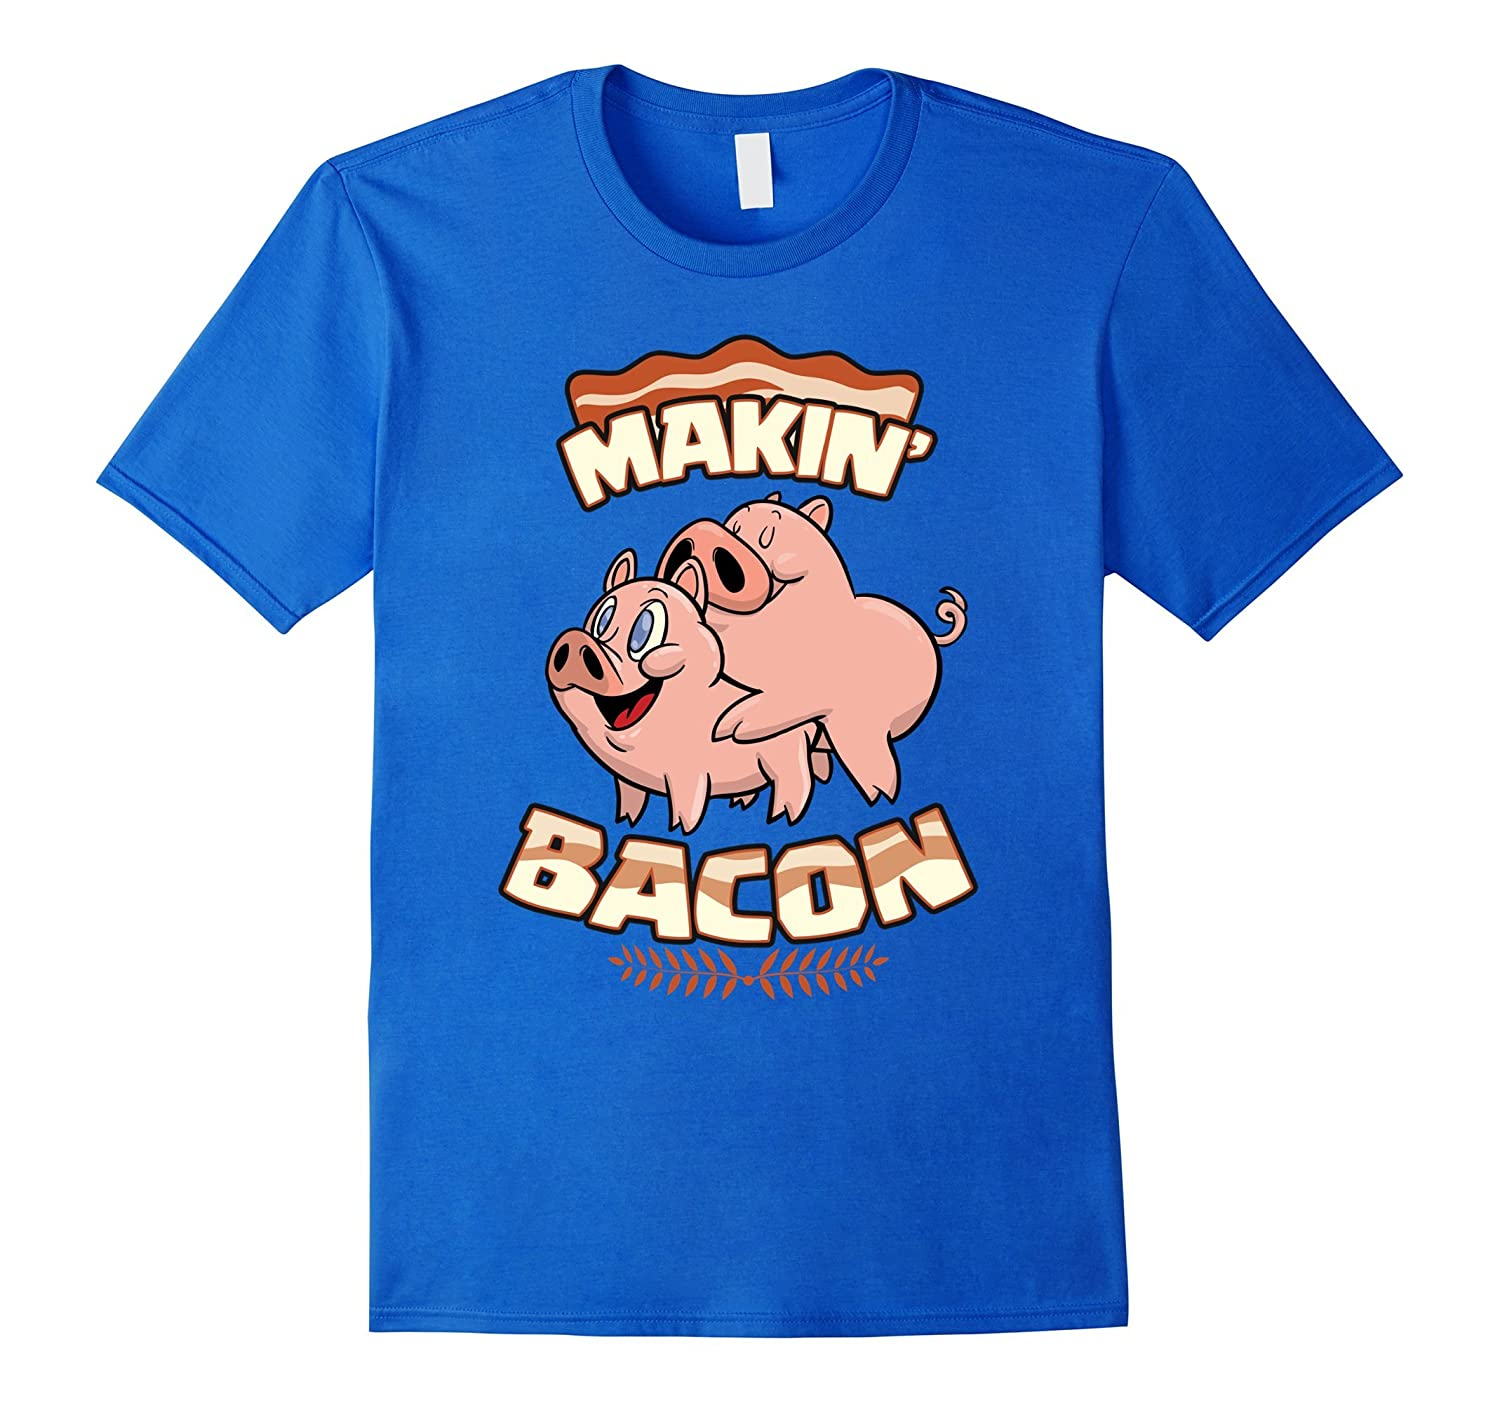 236226a9 Makin Bacon T-shirt Pig Funny Meatatarian Zany Brainy ...